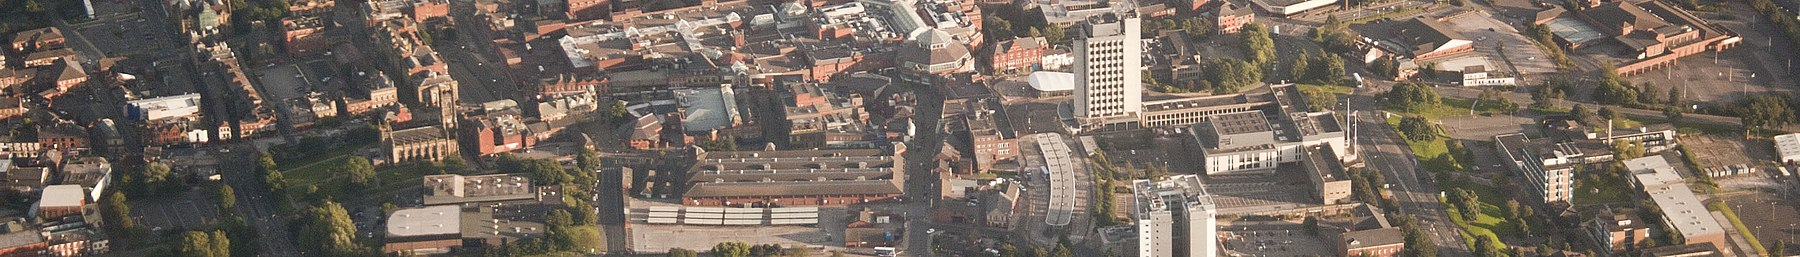 Oldham banner aerial view from north.JPG